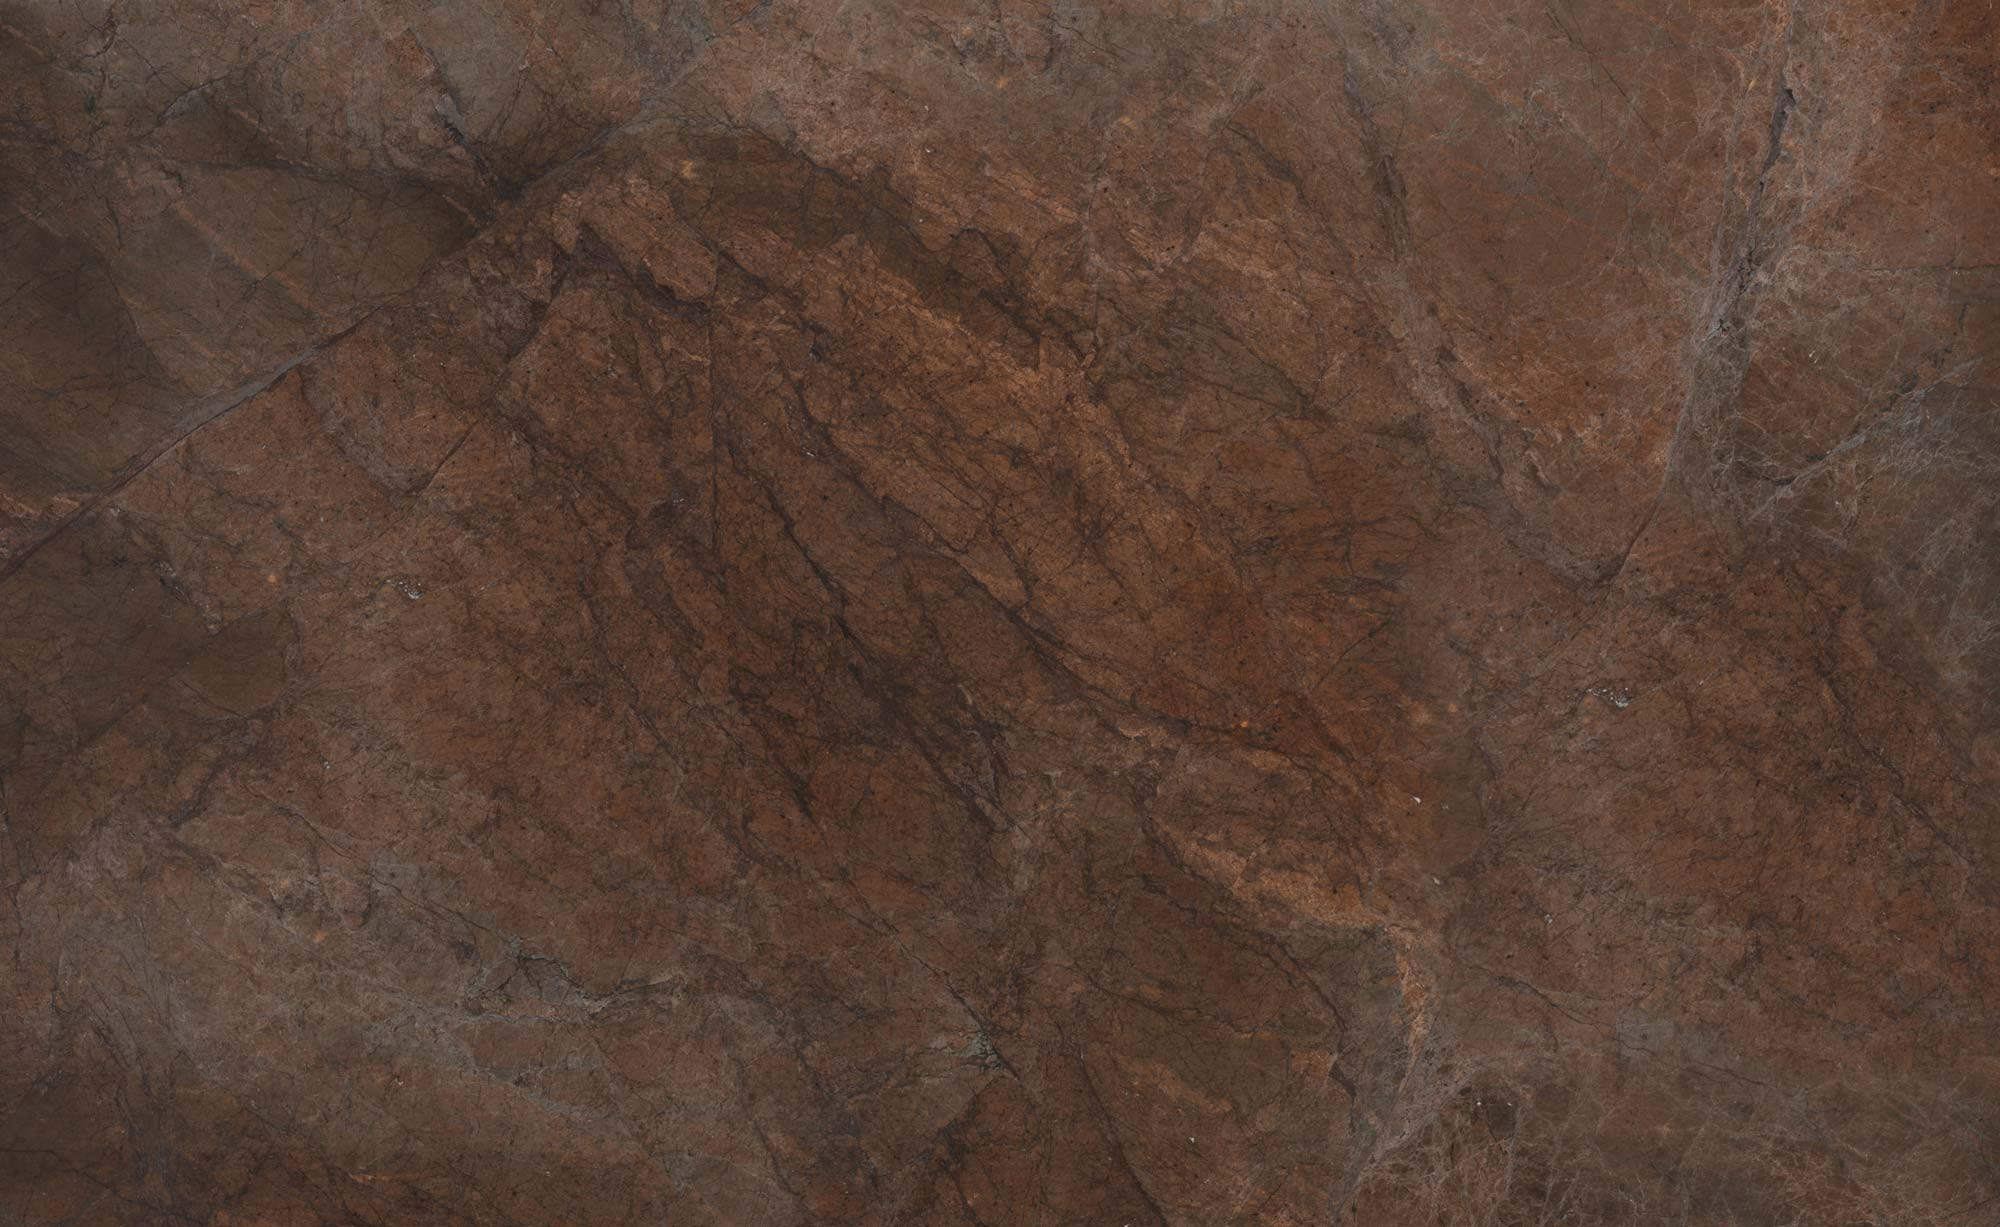 Brown Chocolate Aeon Stone Tile Granite Marble